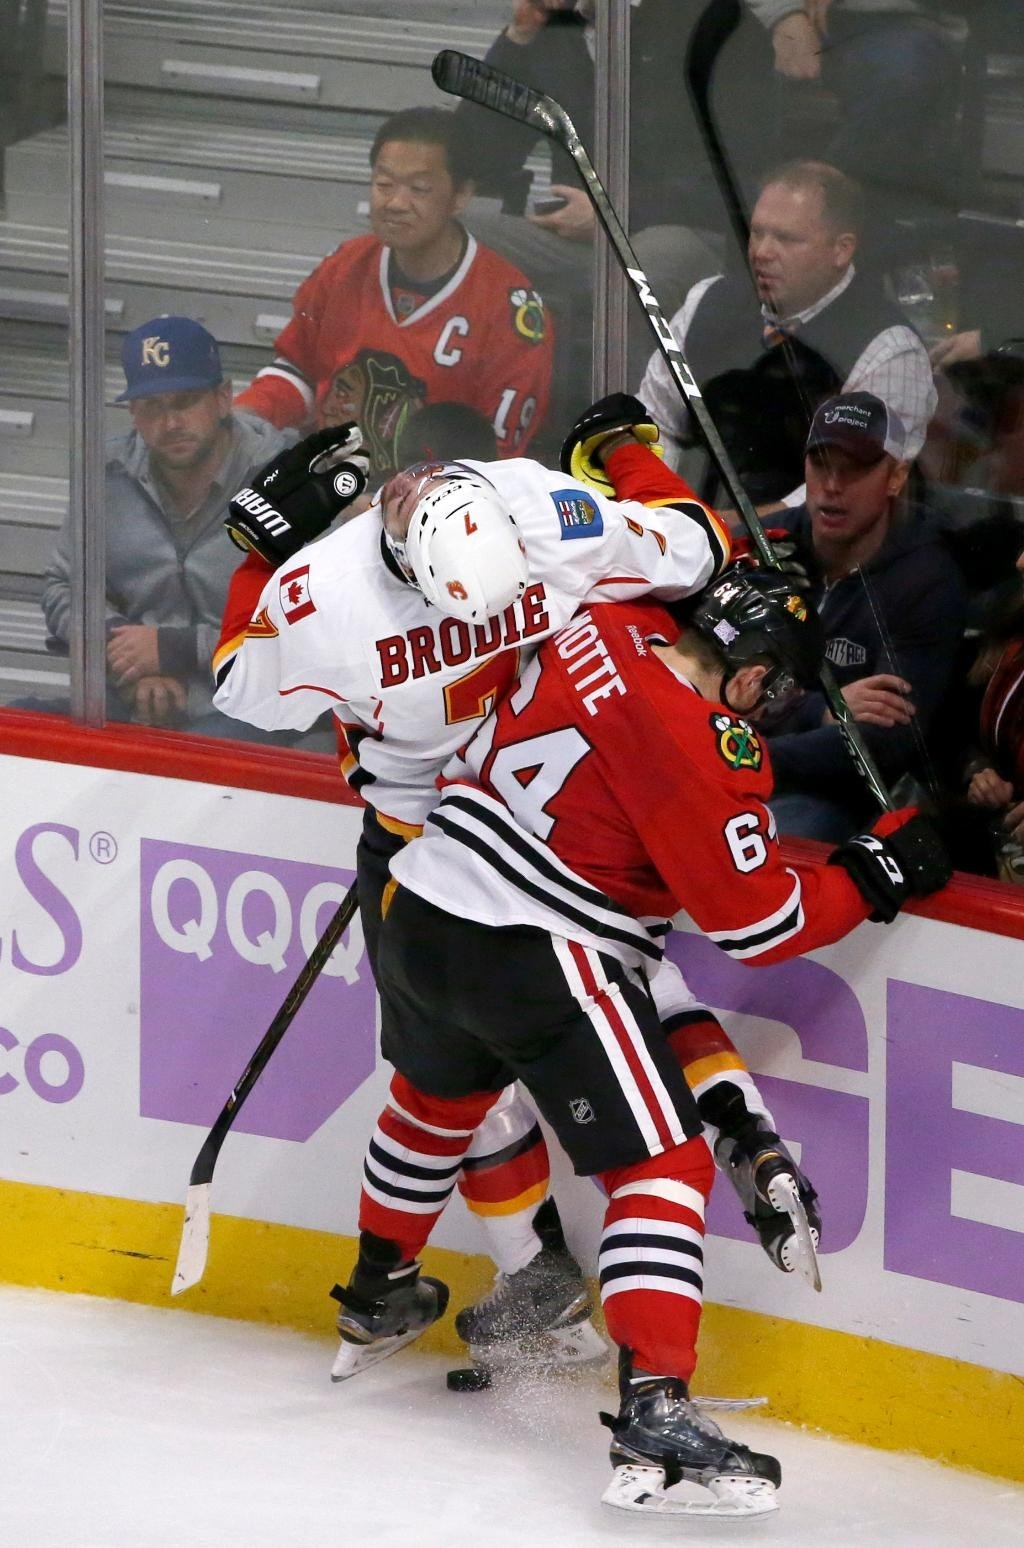 Chicago Blackhawks' Tyler Motte (64) checks Calgary Flames' TJ Brodie into the boards and is called for a four minute high sticking penalty during the second period of an NHL hockey game, Monday, Oct. 24, 2016, in Chicago. (AP Photo/Charles Rex Arbogast)